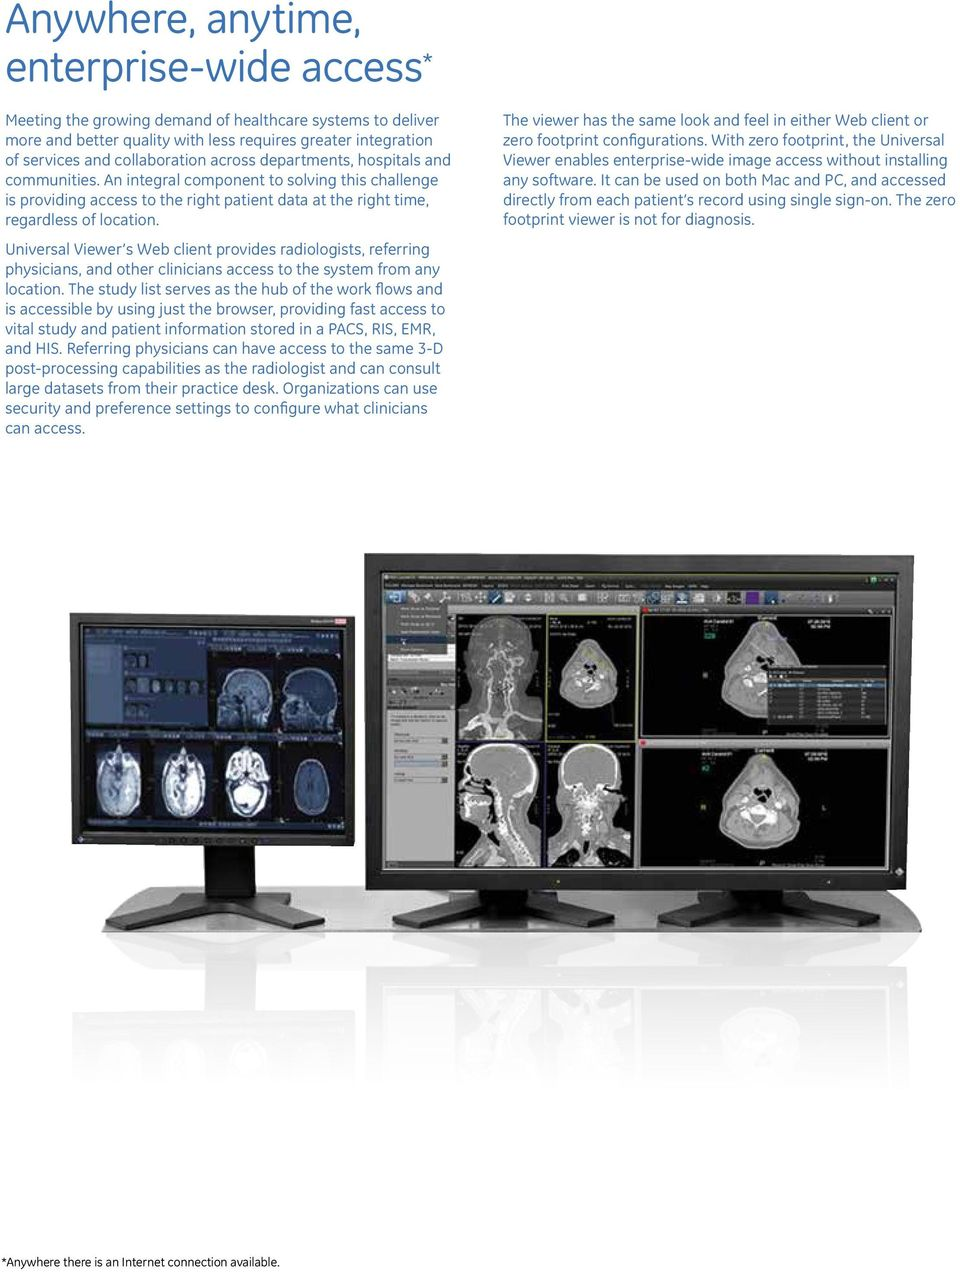 Universal Viewer s Web client provides radiologists, referring physicians, and other clinicians access to the system from any location.